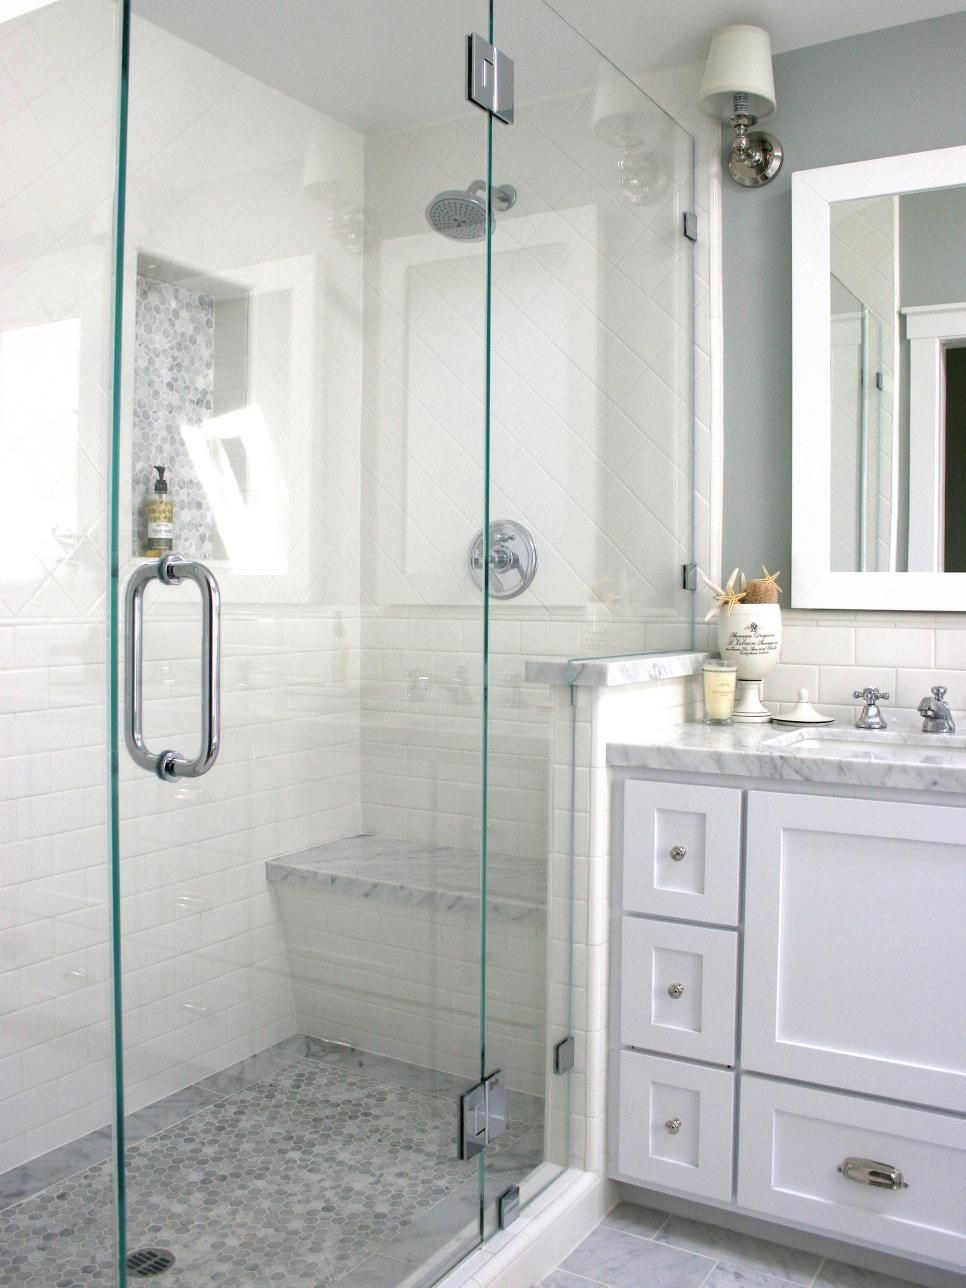 A glassenclosed shower with white tile walls and a gray mosaic tile